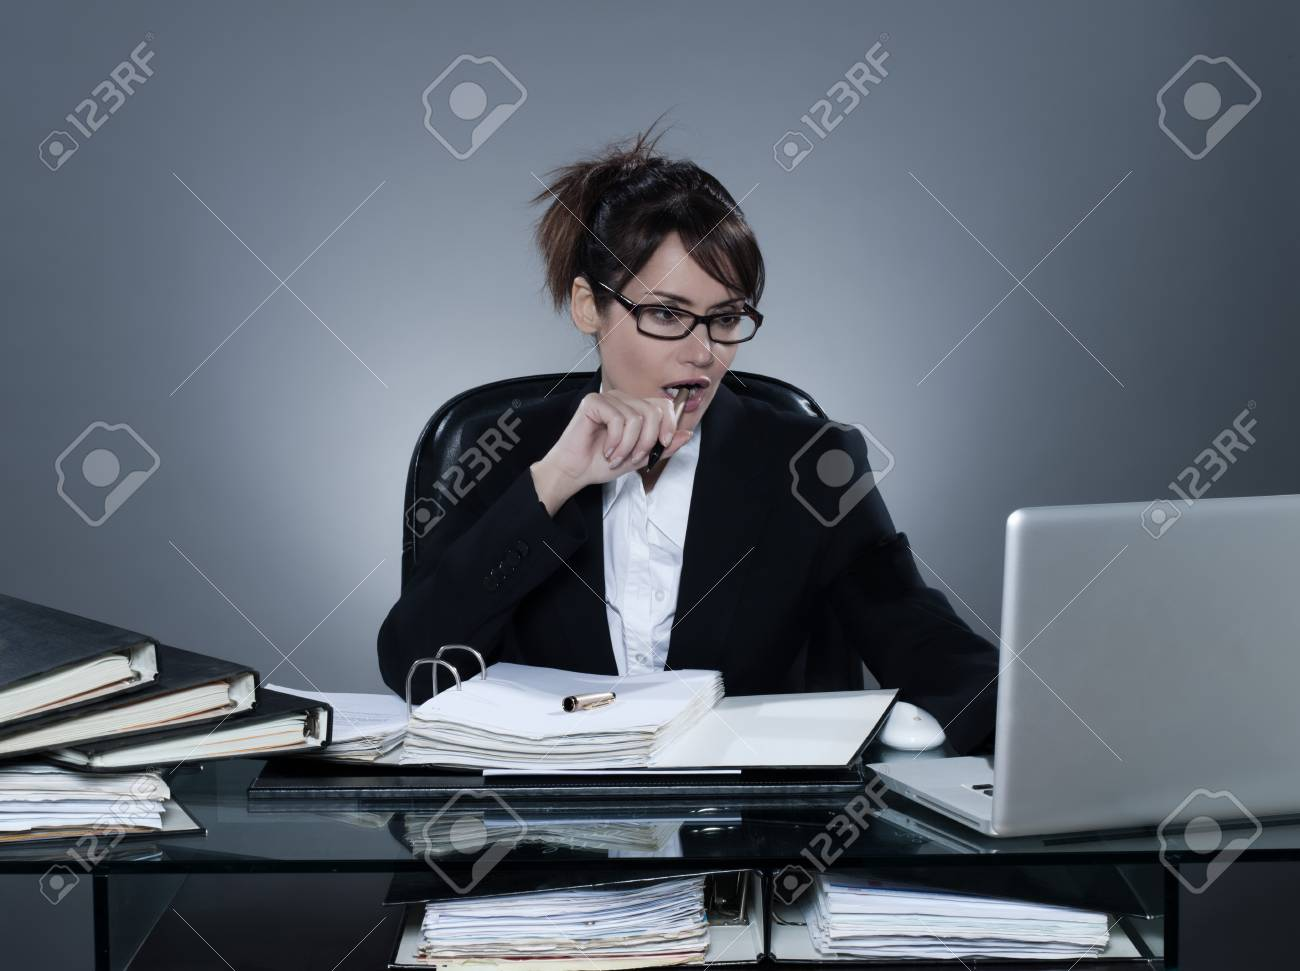 beautiful cheerful caucasian business woman working busy computing laptop computer sitting at desk on isolated background Stock Photo - 19084593